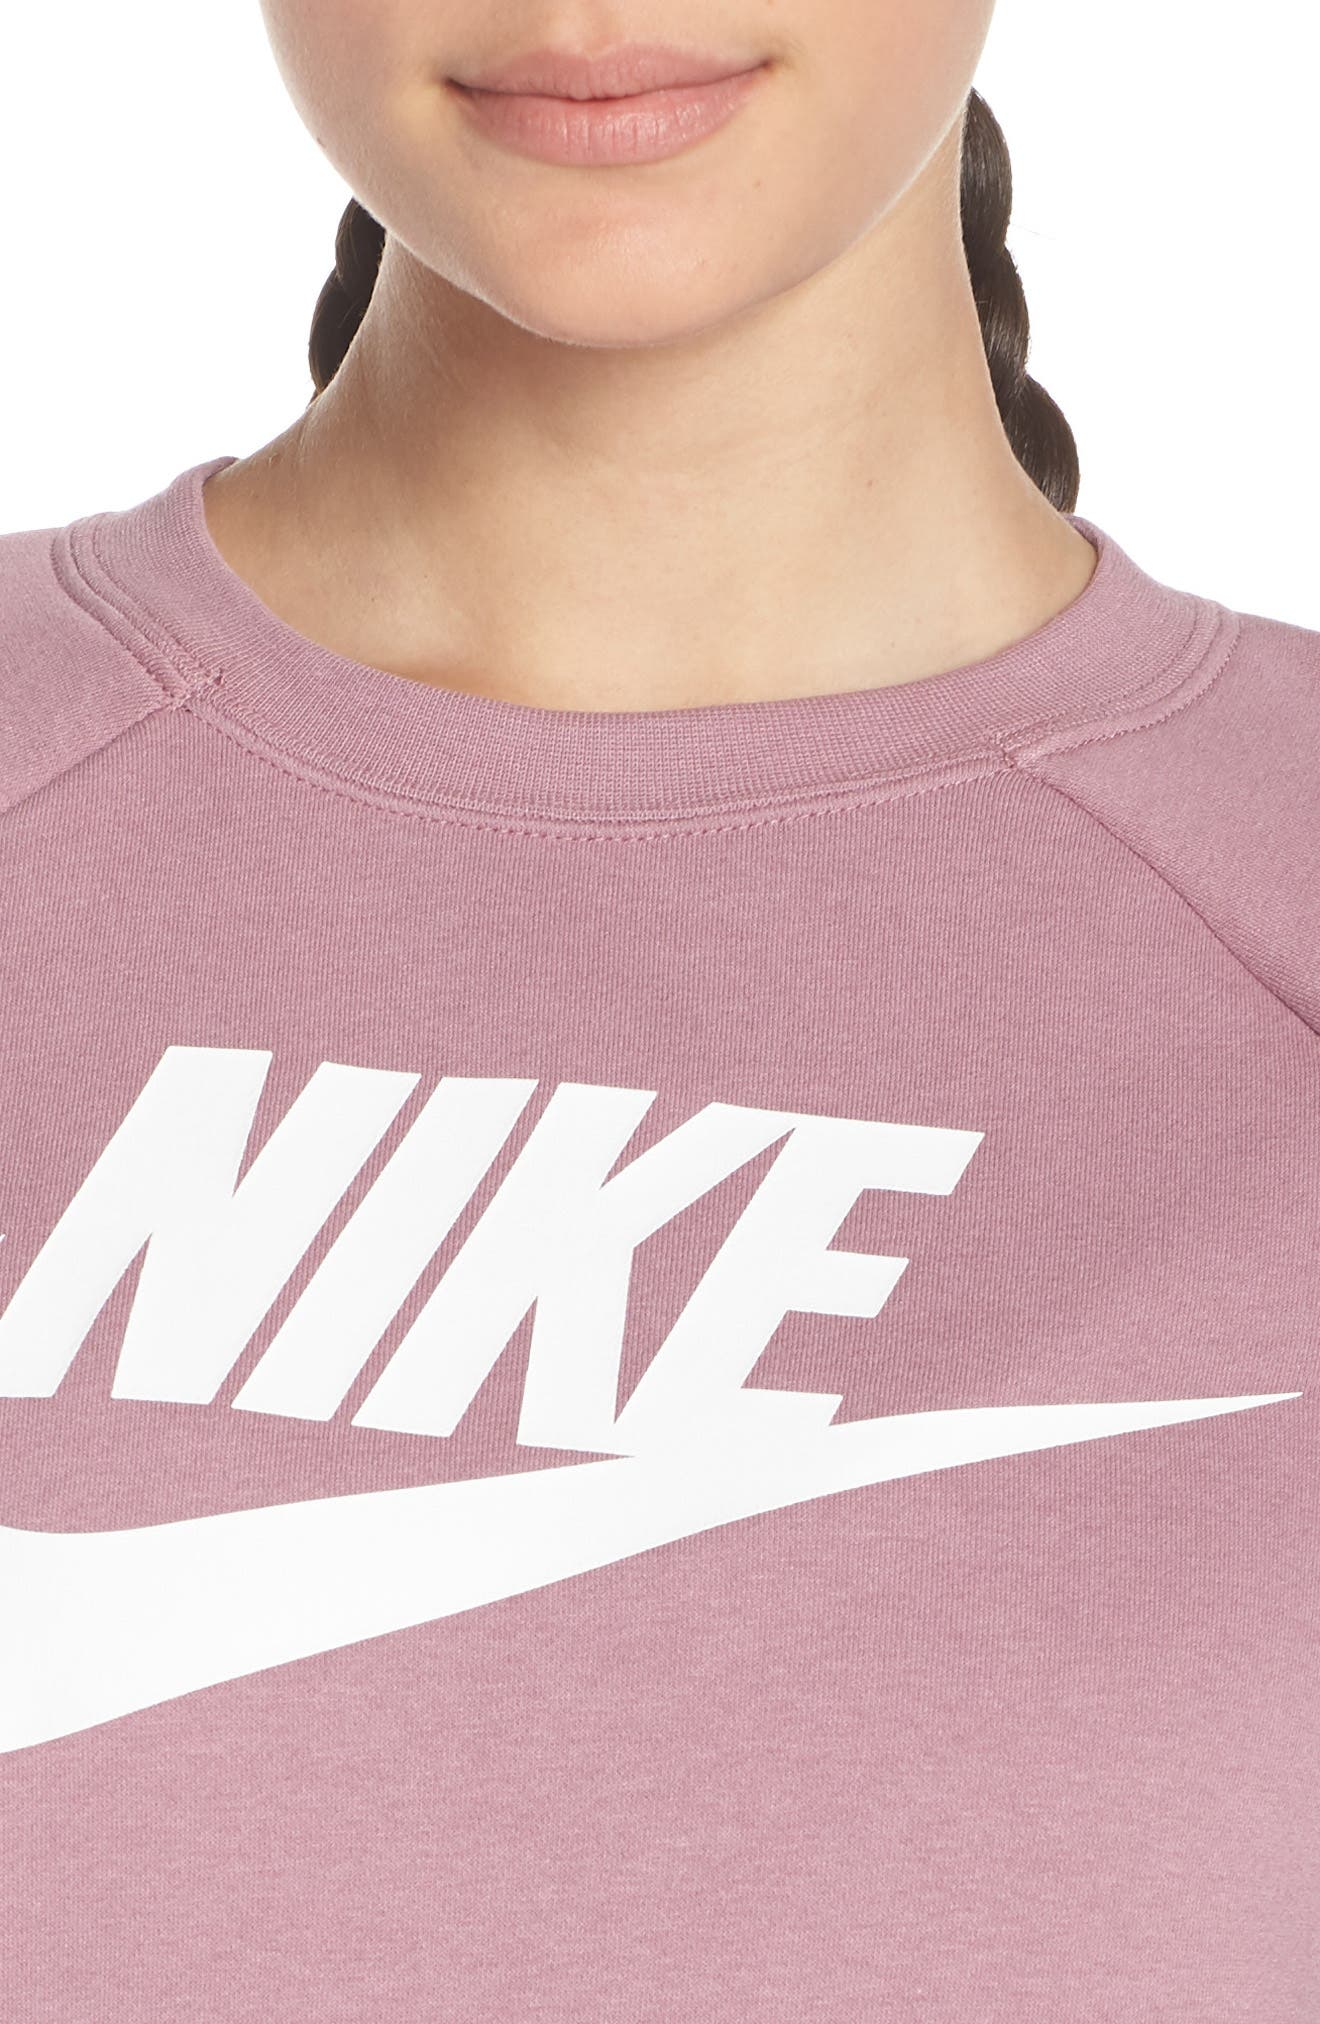 NIKE, NSW Rally Sweatshirt, Alternate thumbnail 5, color, PLUM DUST/ WHITE